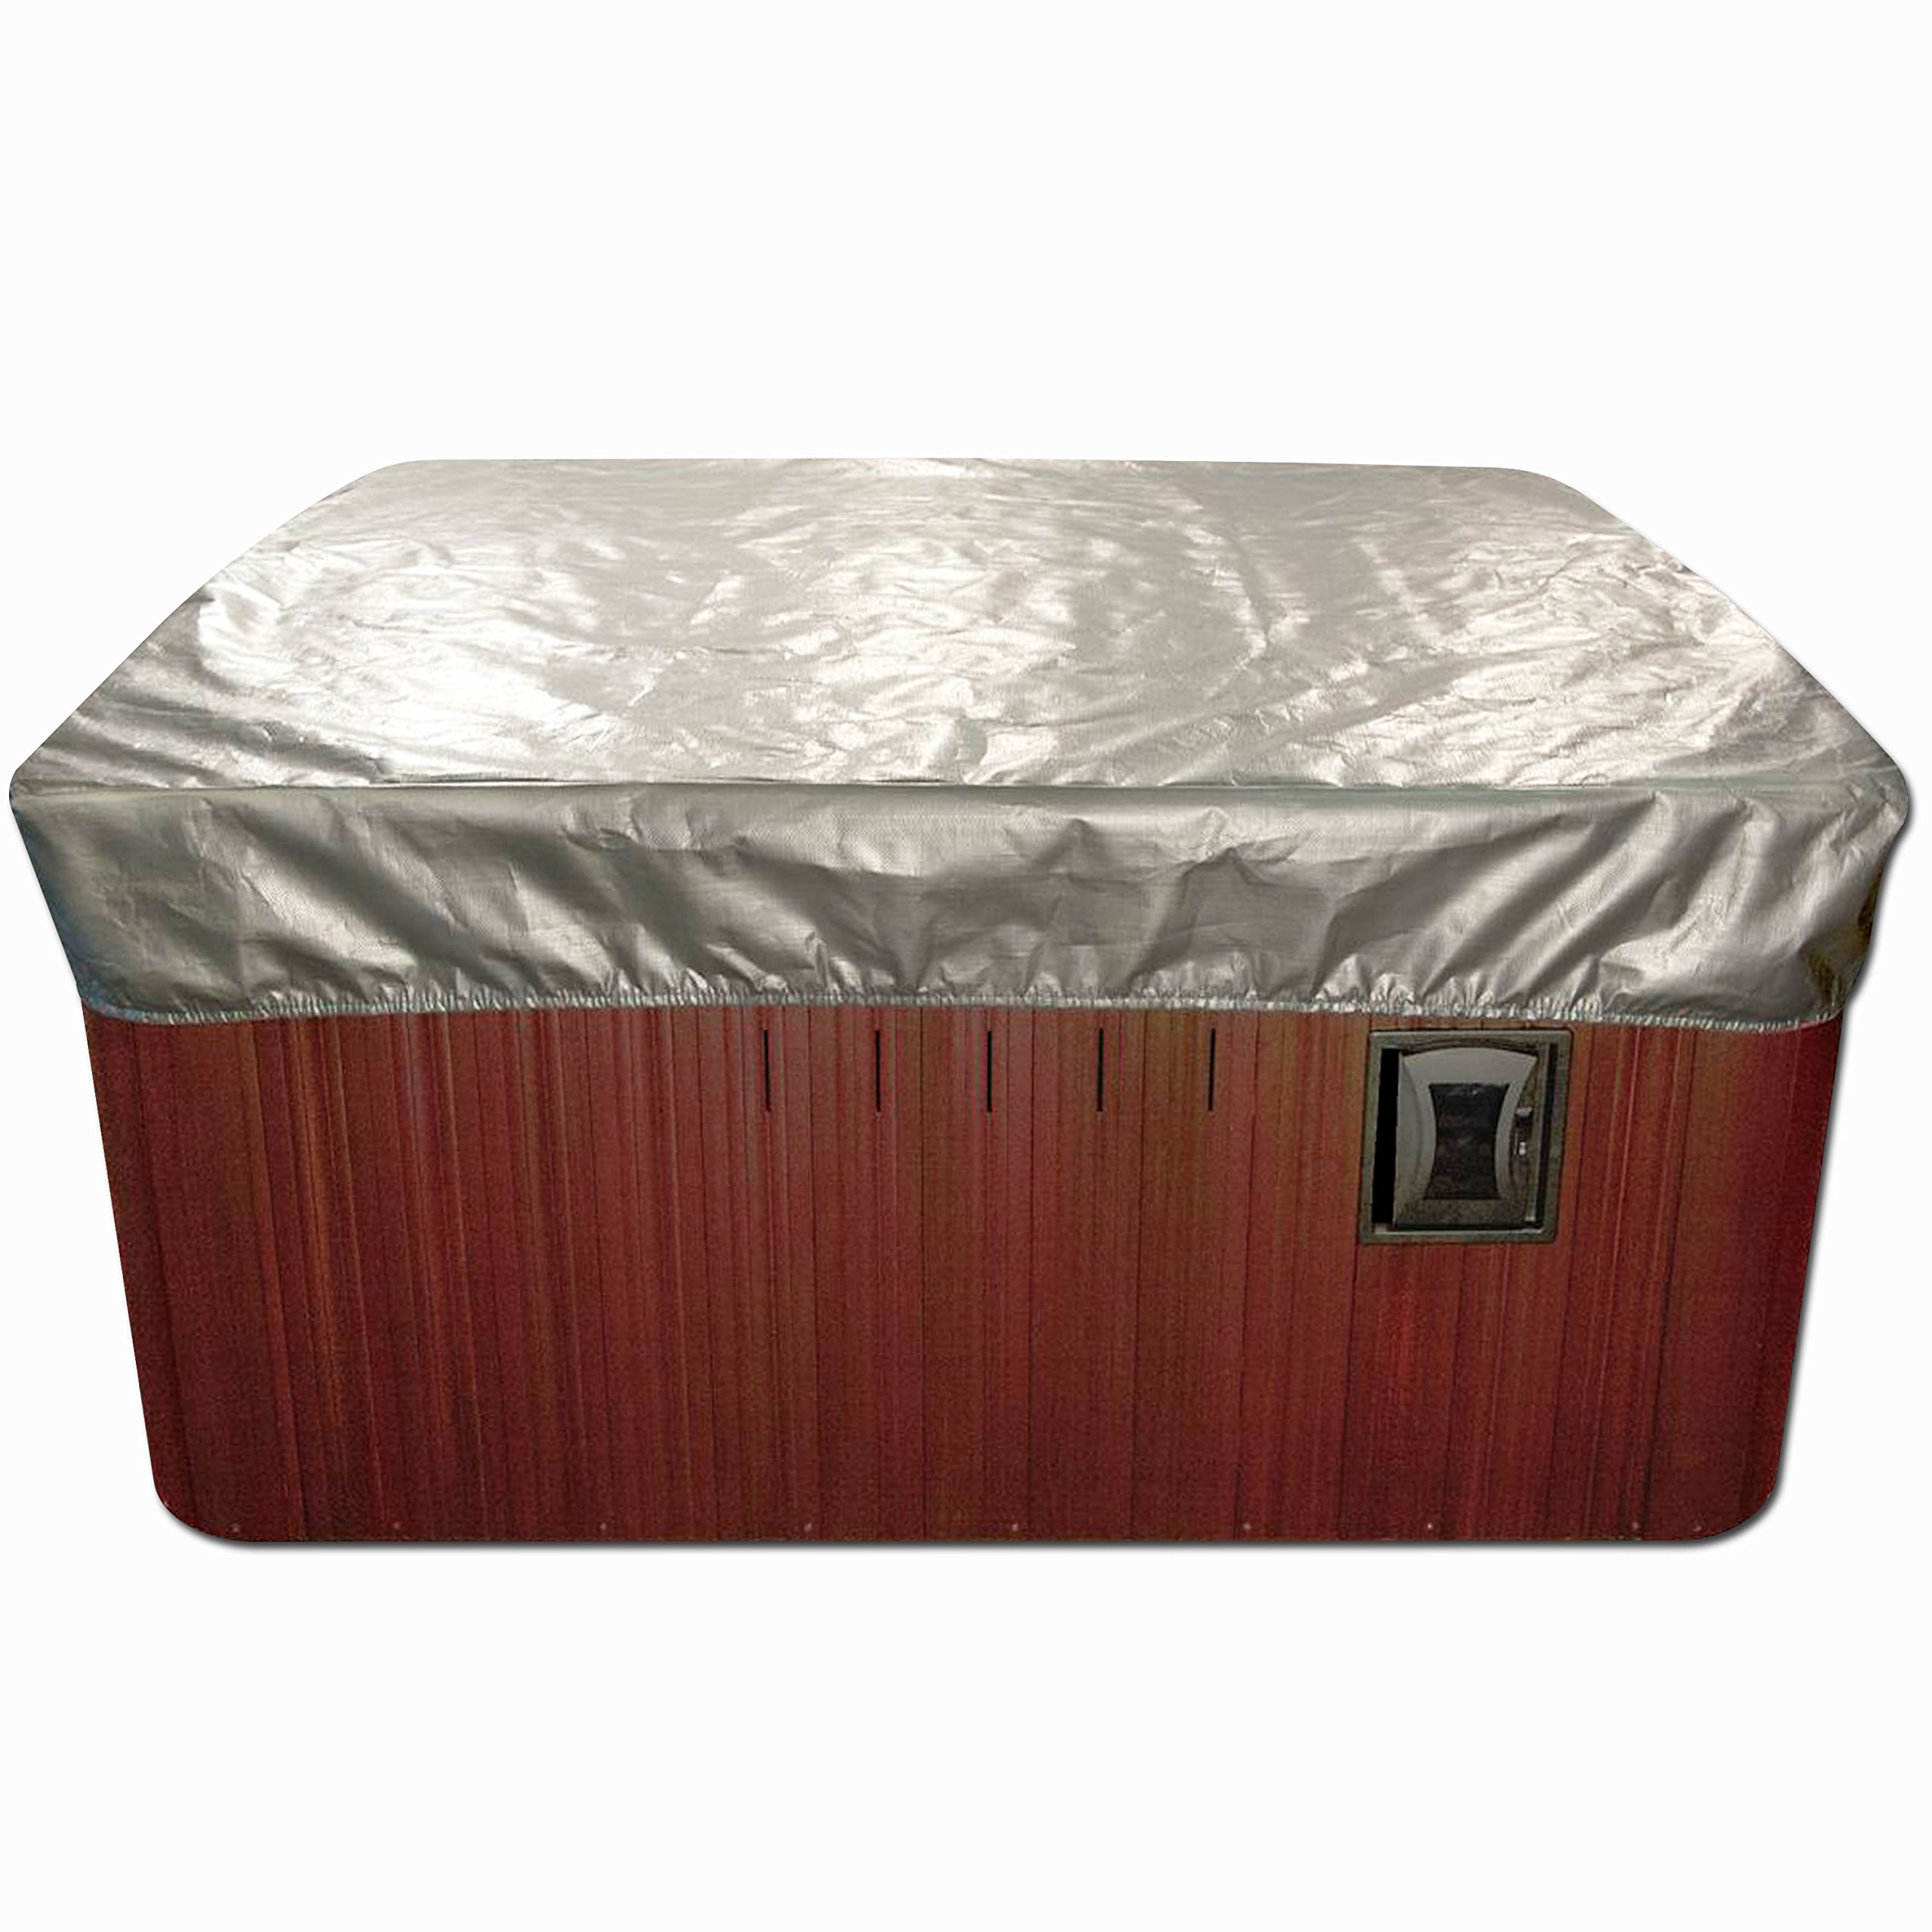 Spa Cover Cap Thermal Spa Cover Protector - 7 x 7 Feet x 12 Inches